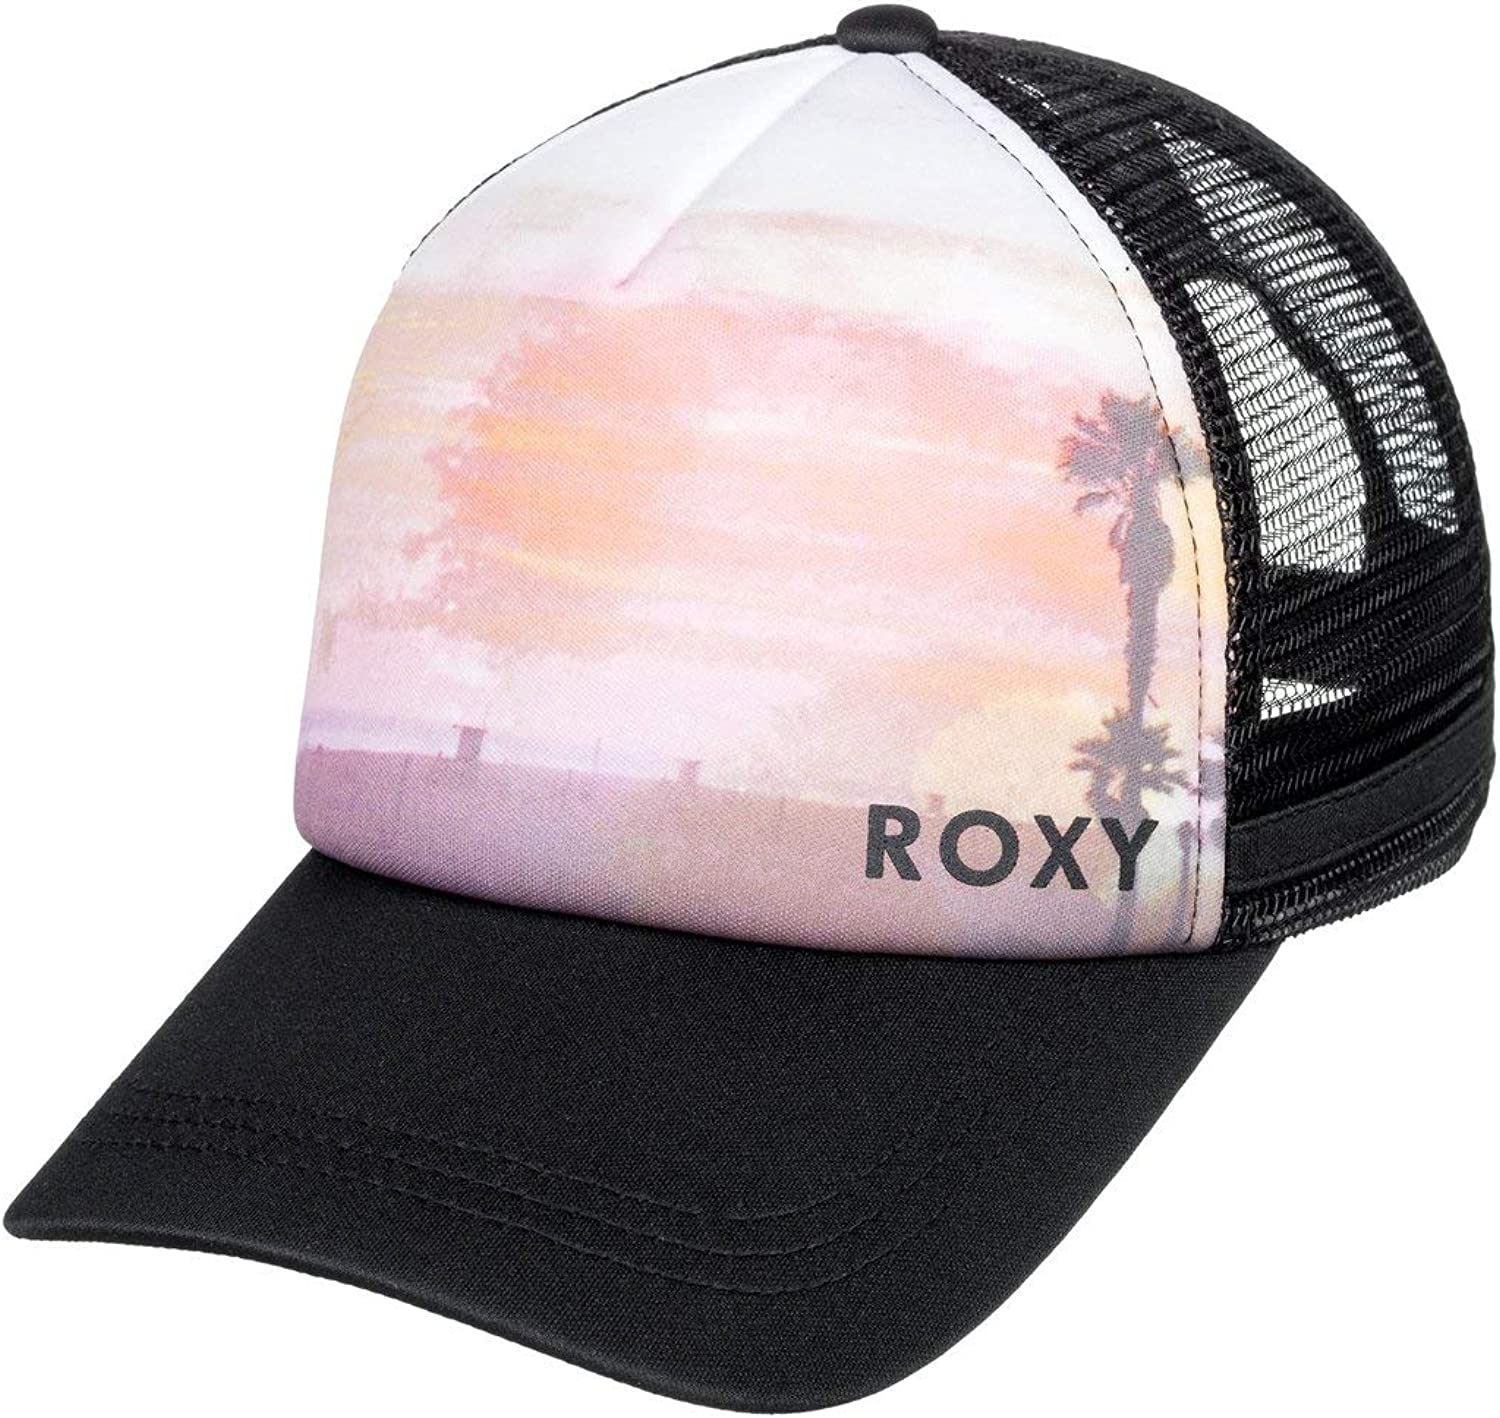 Roxy Dig This Cap, Mujer, True Black, 1SZ: Roxy: Amazon.es: Ropa y ...